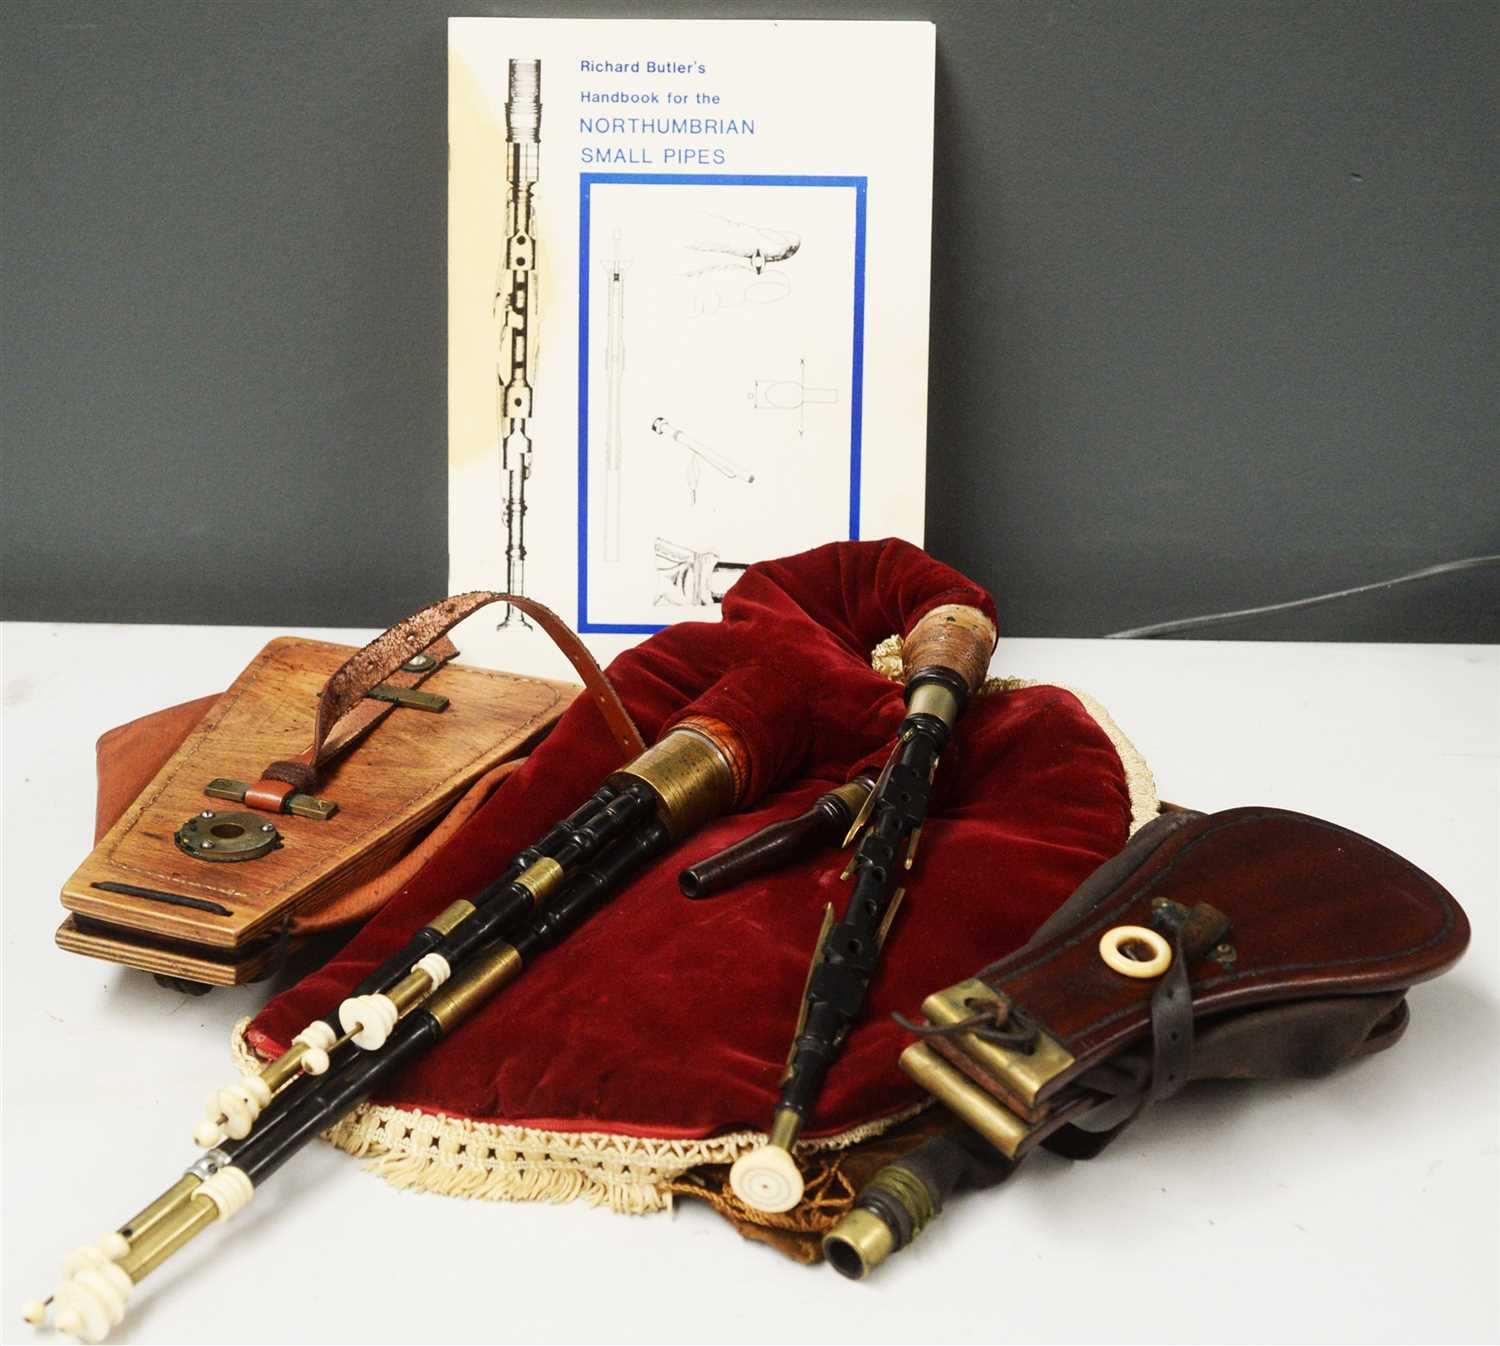 Lot 18 - Set of Northumbrian small pipes.